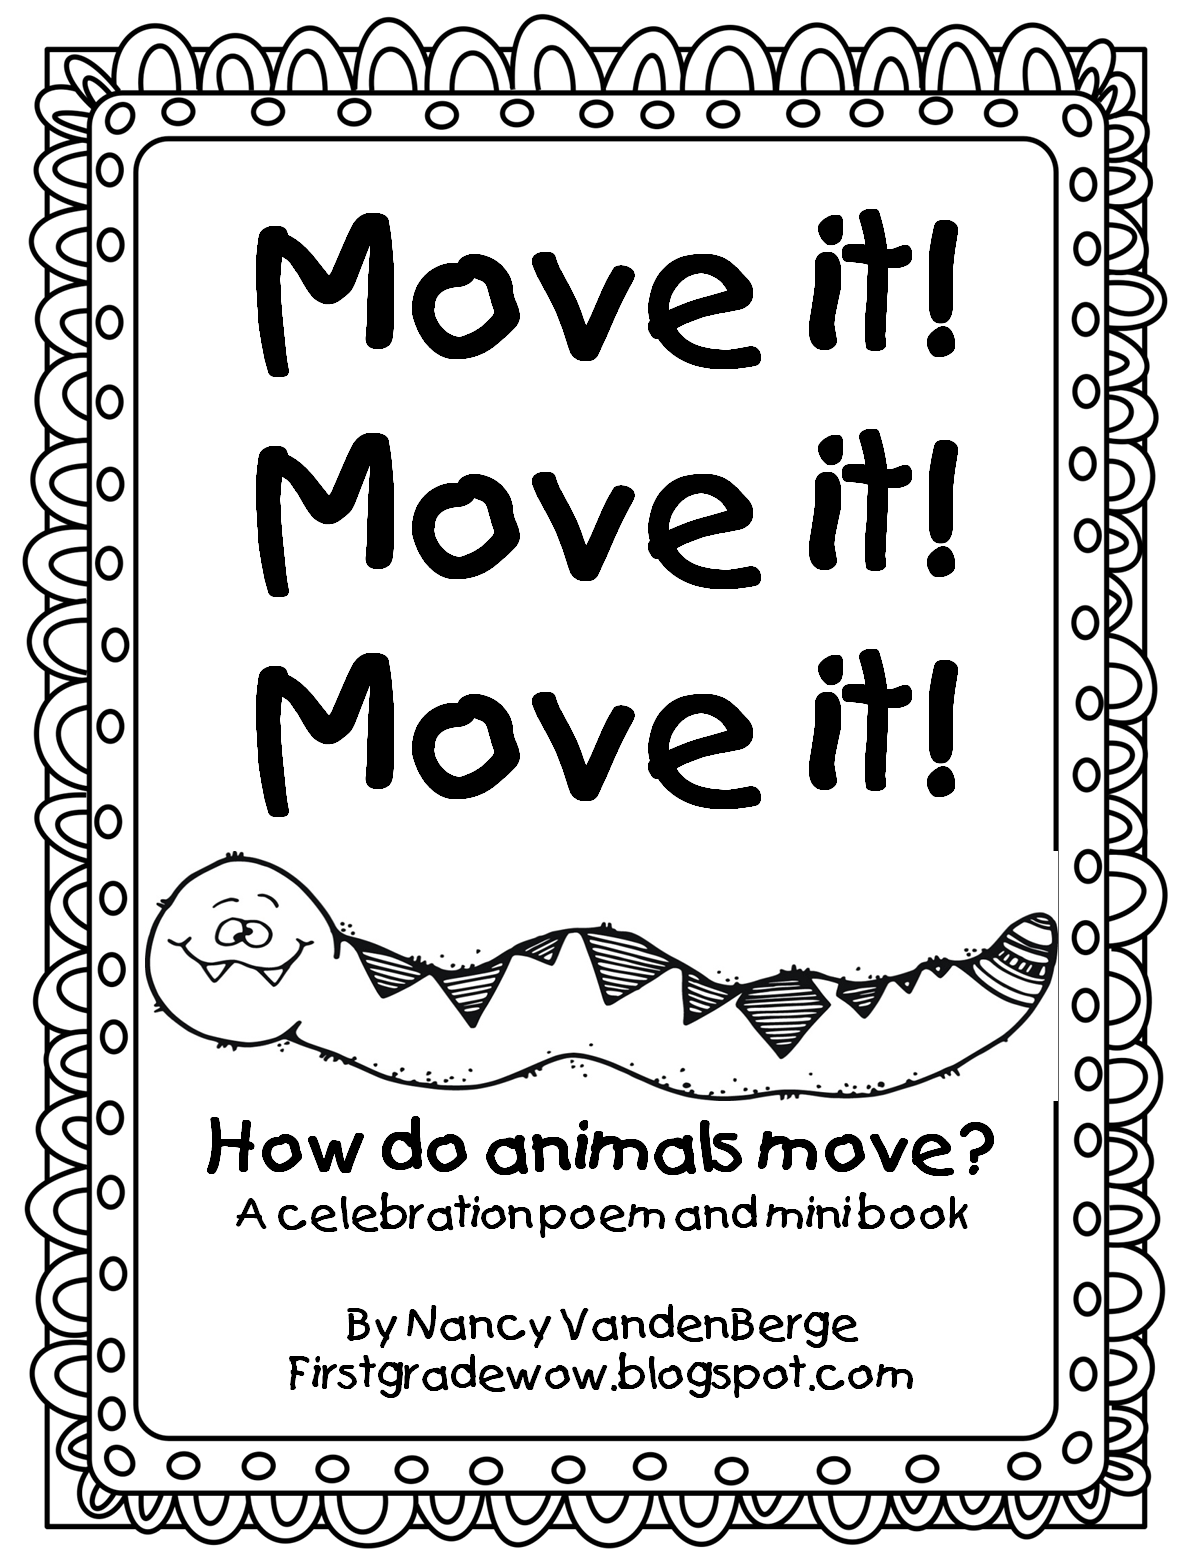 Move It Move It Move It With Images